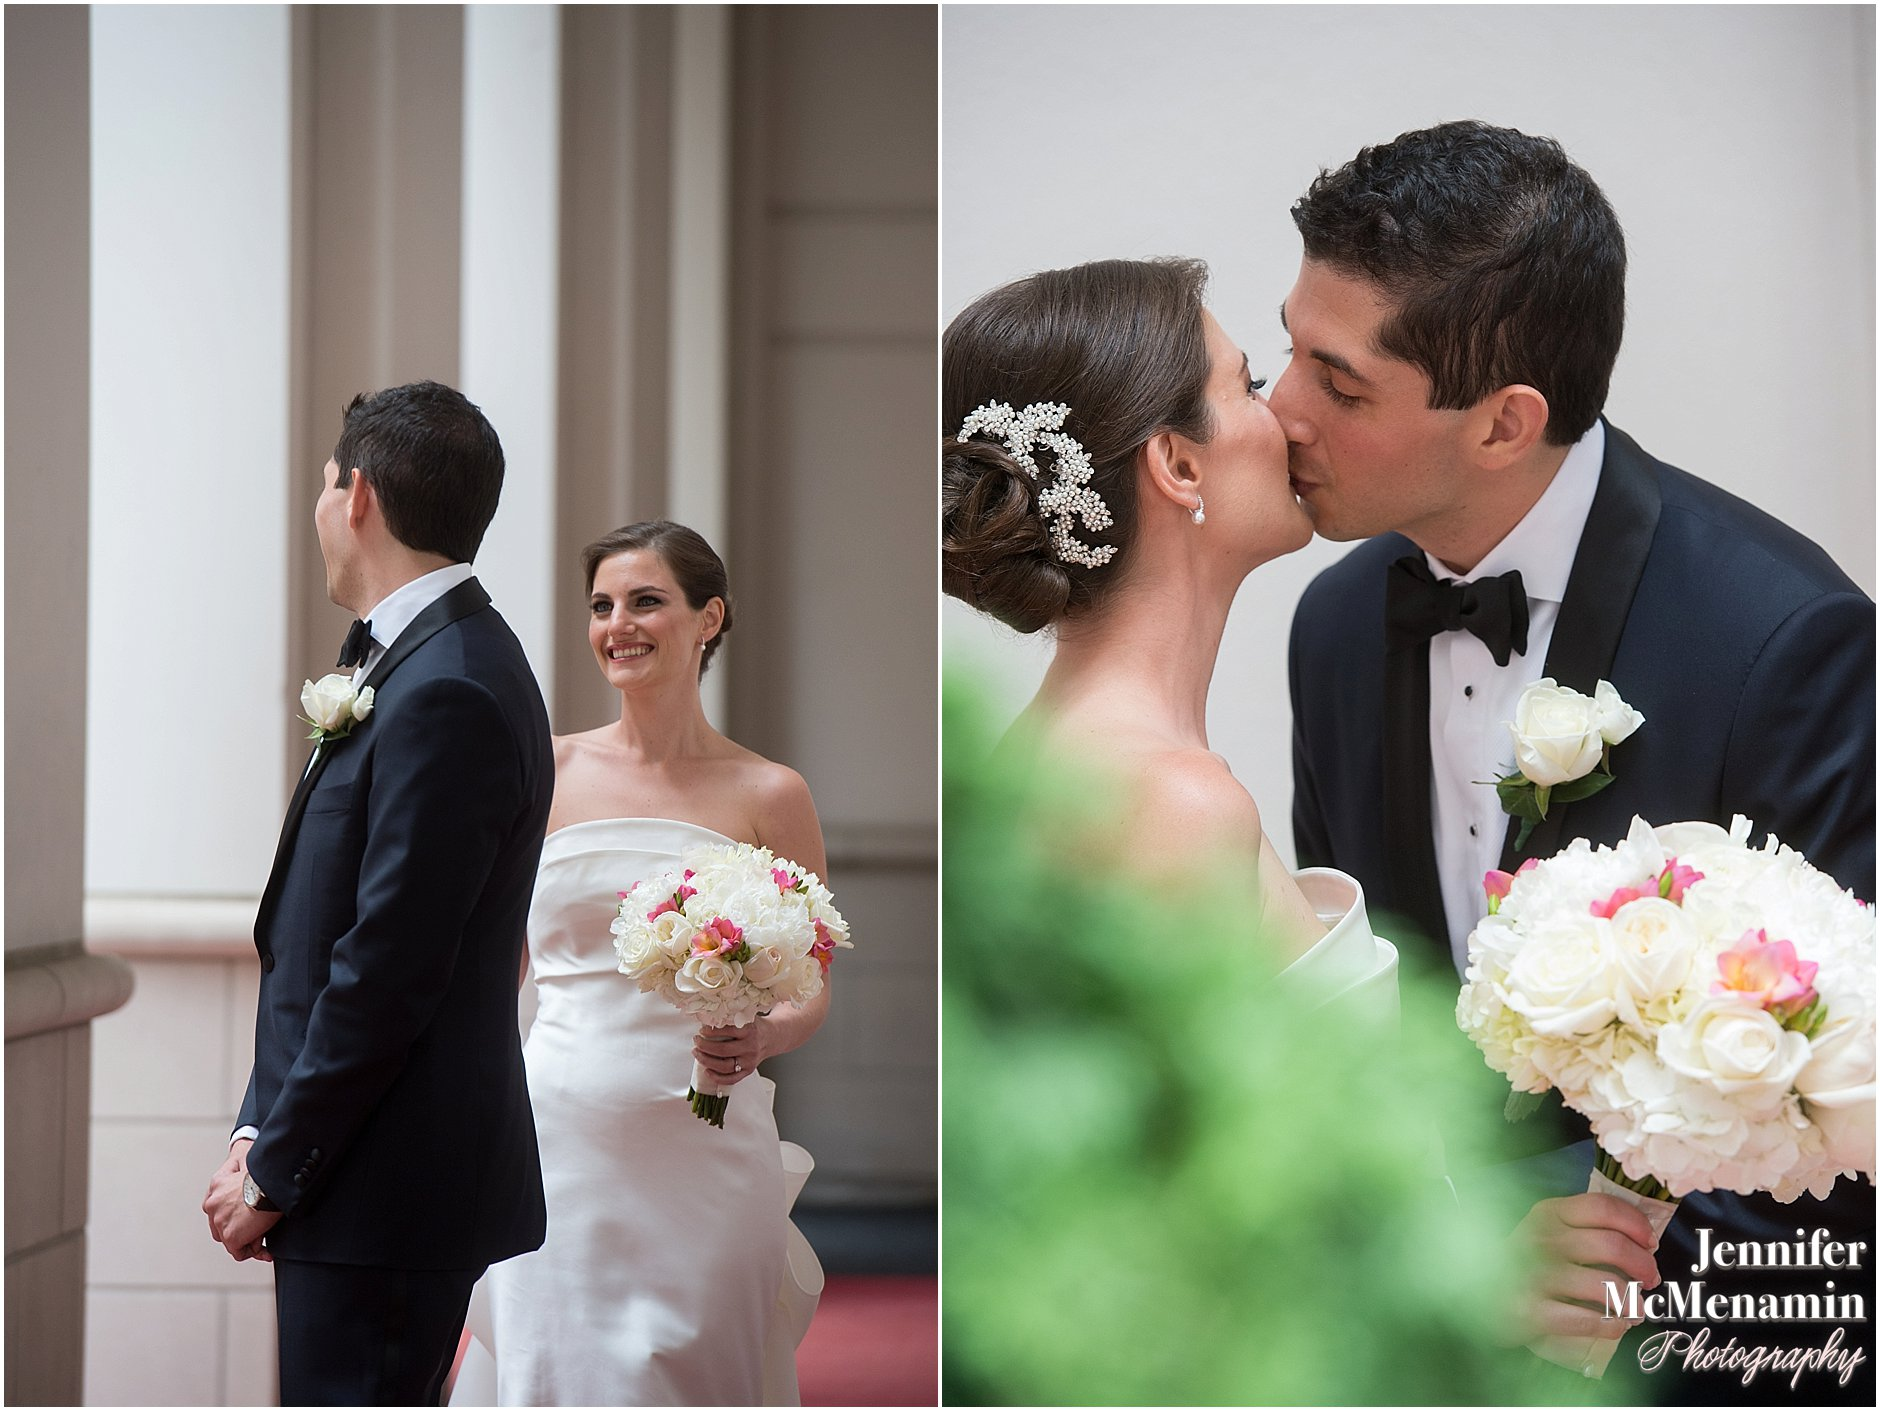 024-Jennifer-McMenamin-Photography-Baltimore-Waterfront-Marriott-wedding_0022